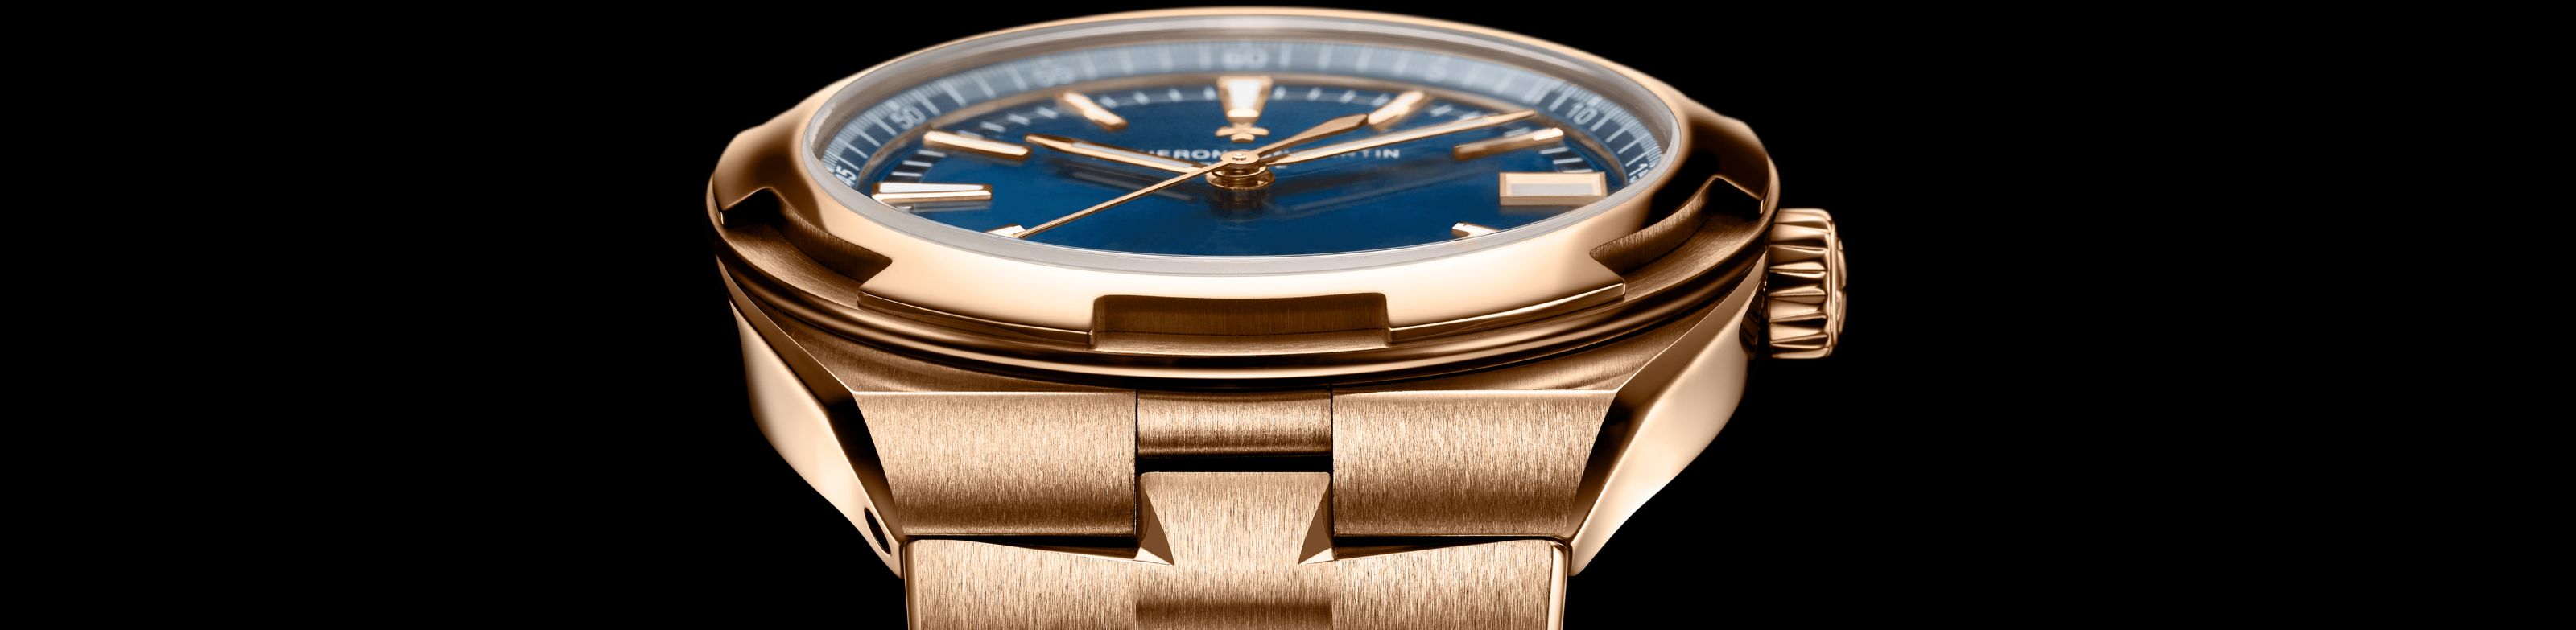 New Arrival - Vacheron Constantin Overseas Automatic in Rose Gold article hero image